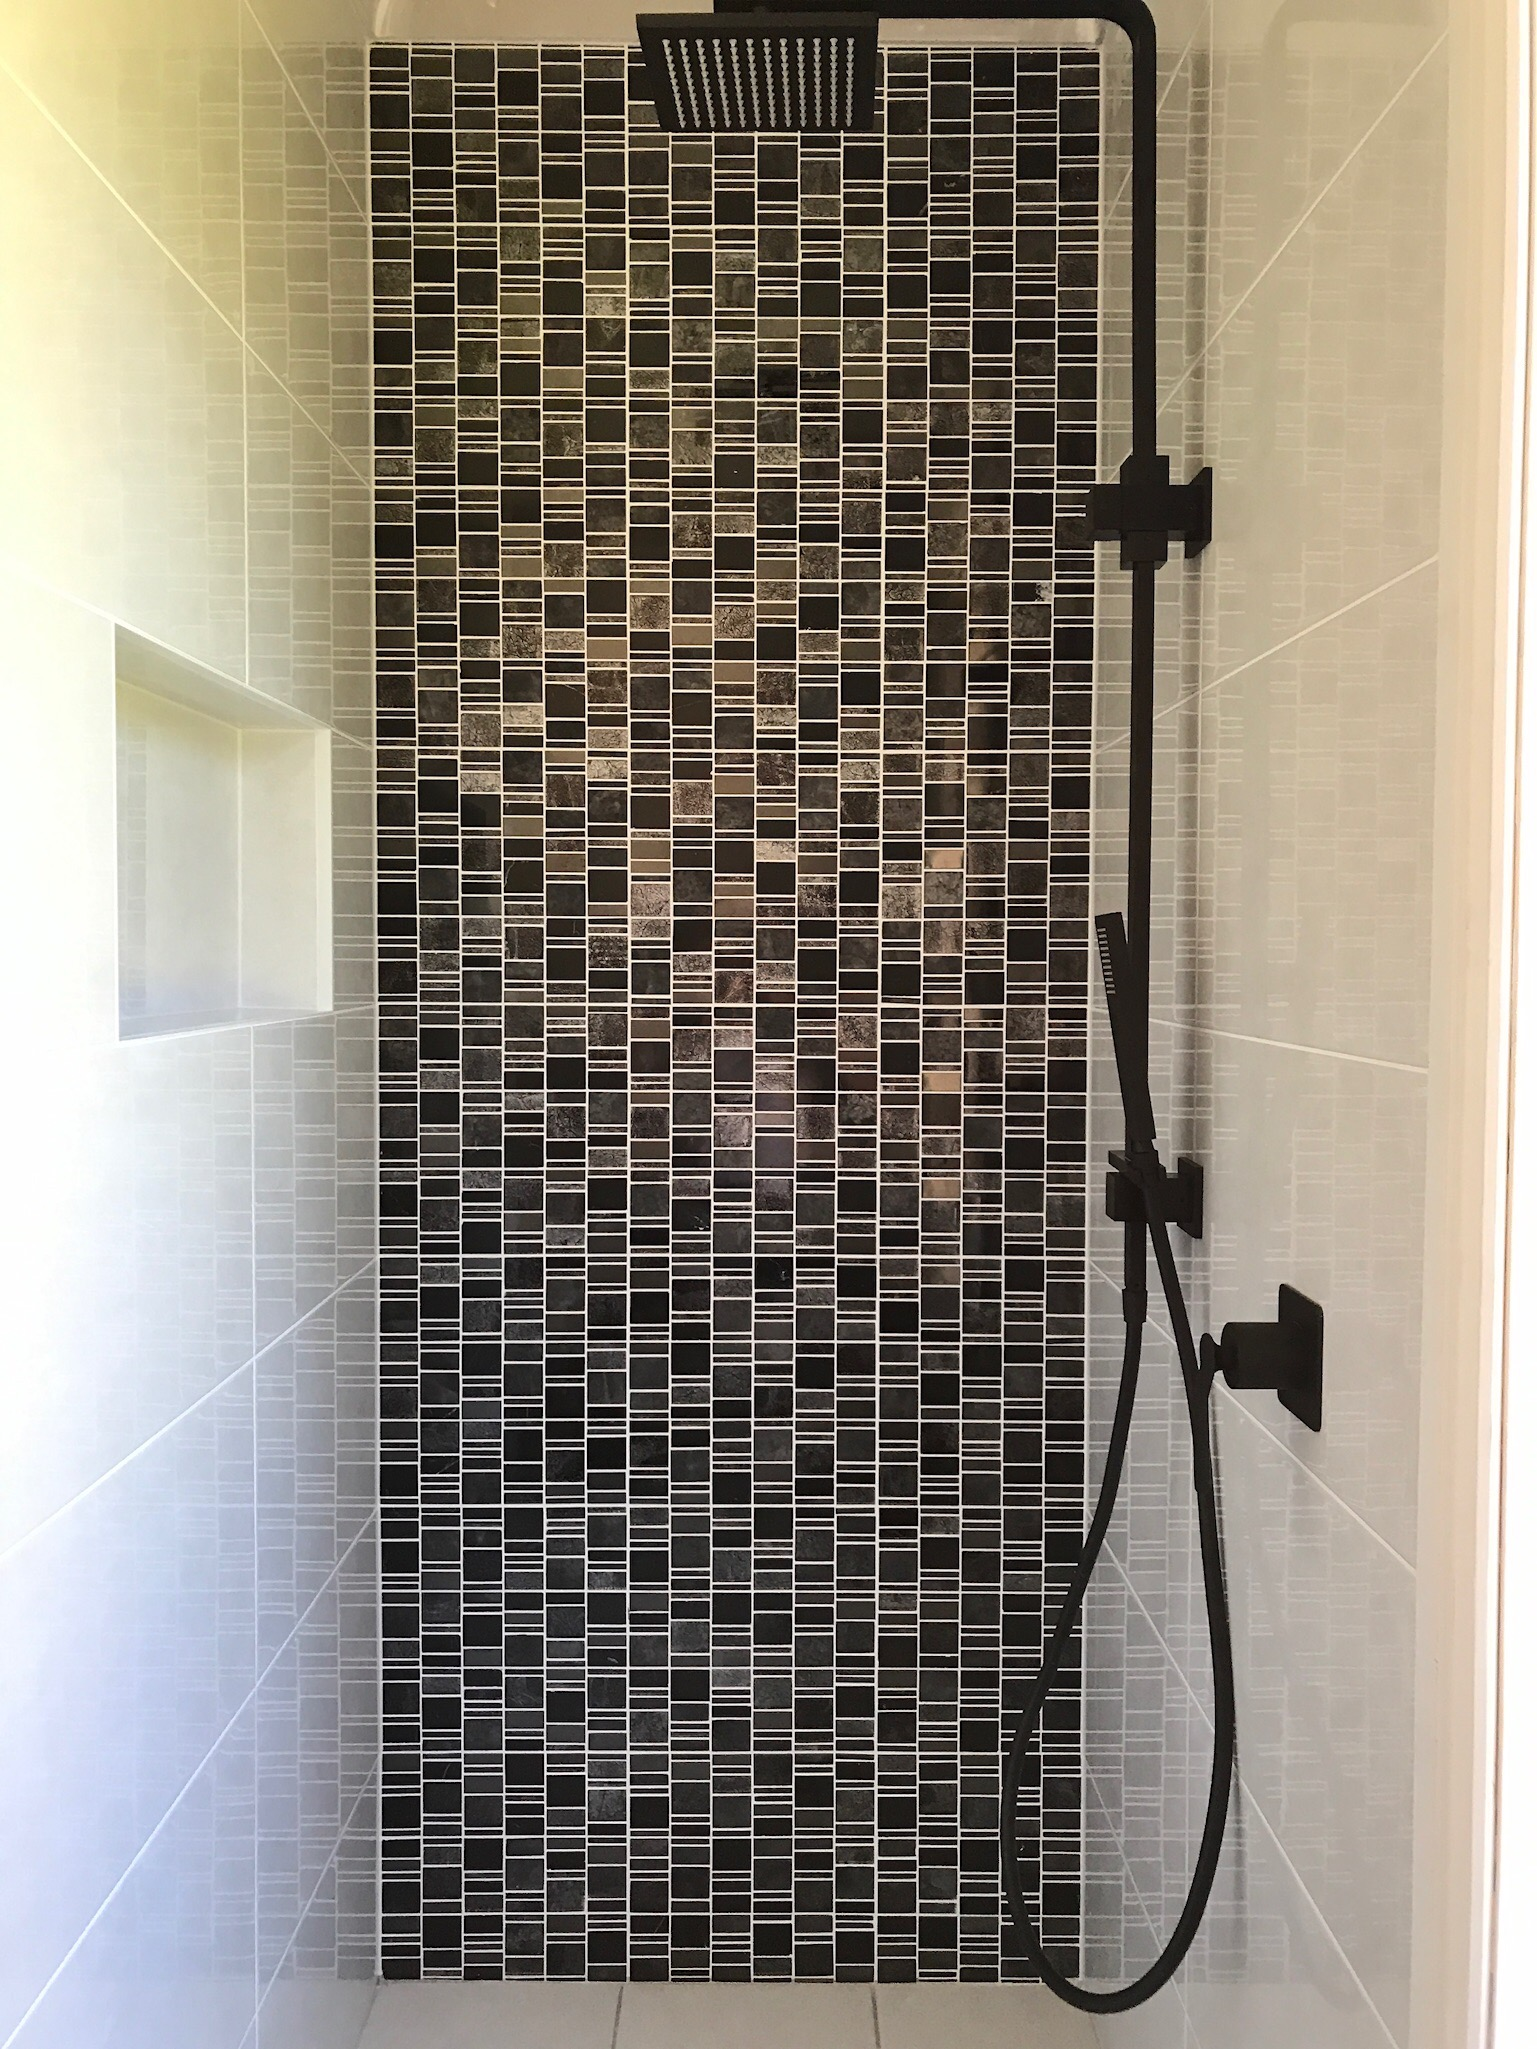 Bathroom renovations hornsby - How To Choose Tiles For Your Bathroom Renovation